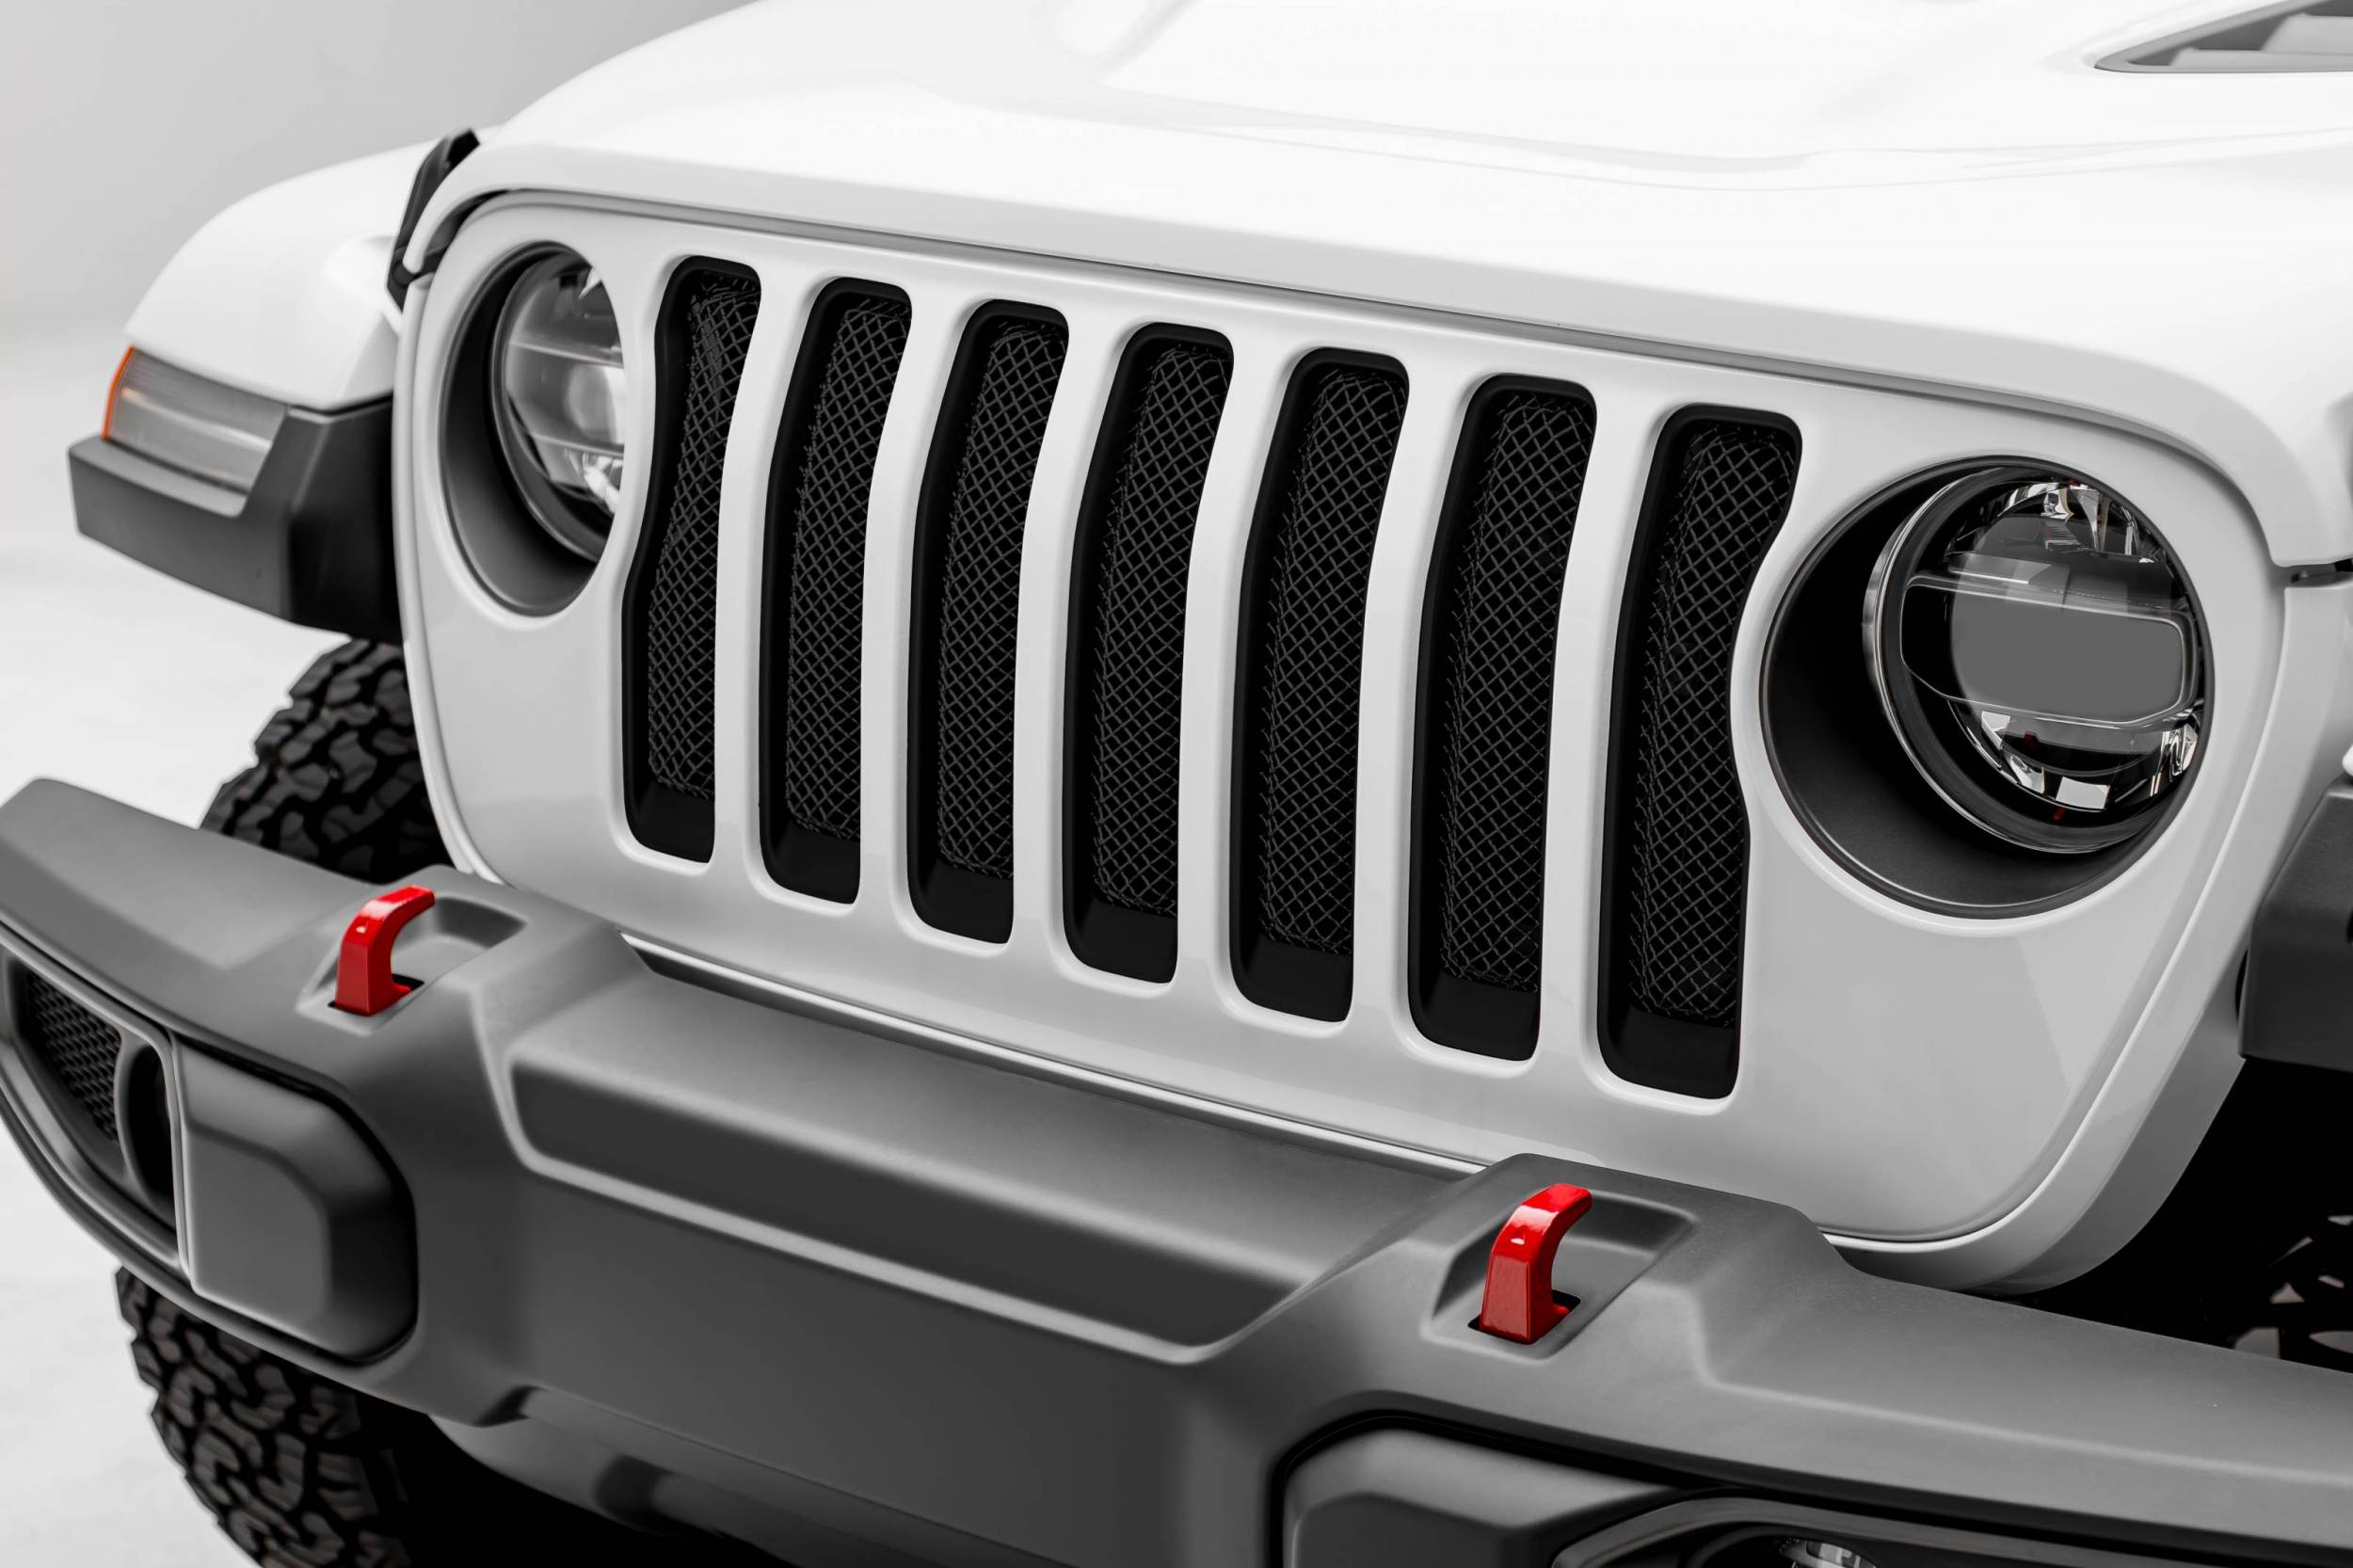 T-REX Grilles - Jeep Gladiator, JL Sport Series Grille, Black, 1 Pc, Insert, Does Not Fit Vehicles with Camera - PN #46493